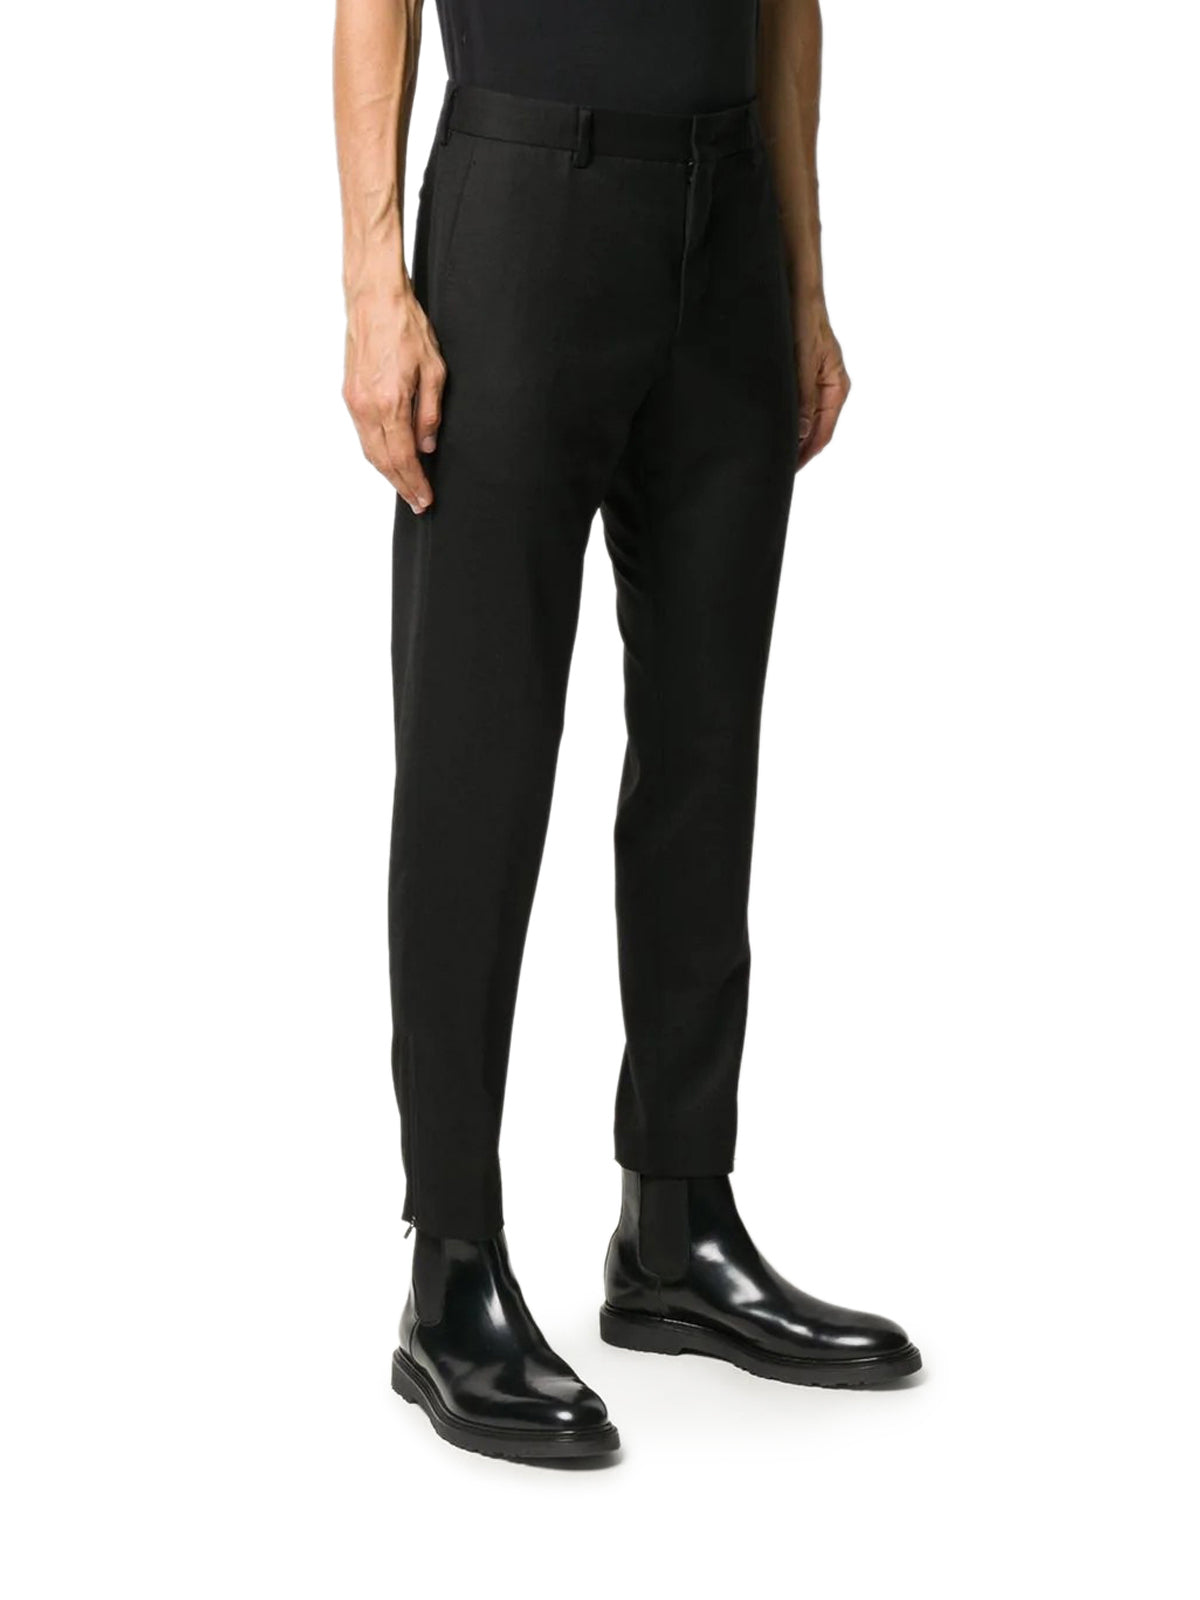 tapered-leg tailored trousers